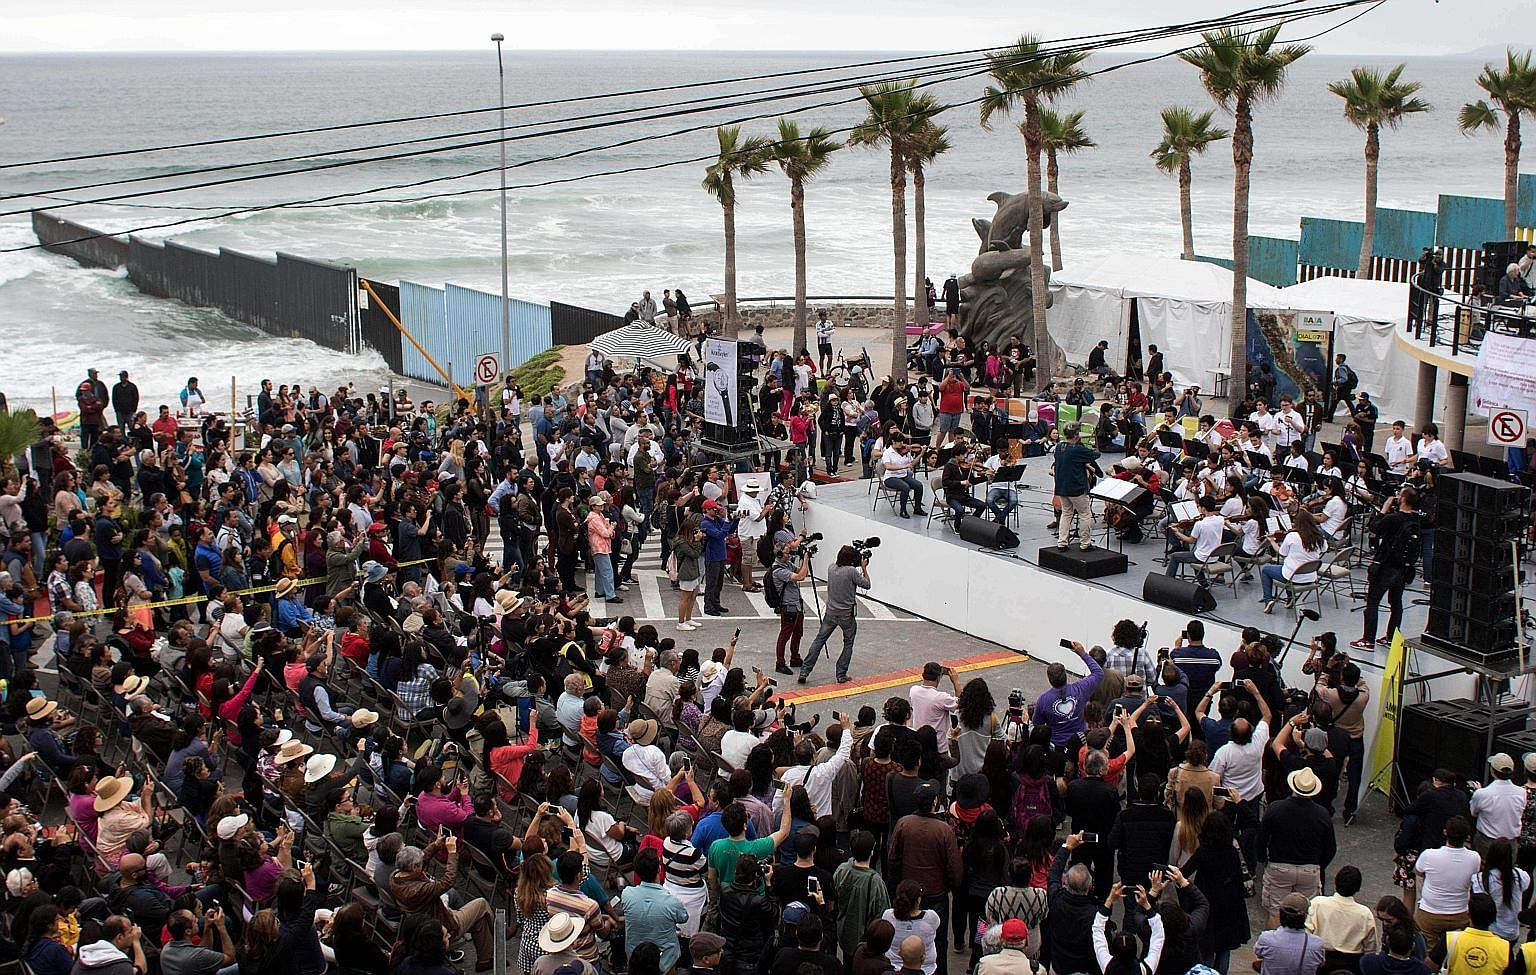 Musicians from the US and Mexico, and from around the world, performed at the Tear Down This Wall concert in Playas de Tijuana, Mexico, on June 3, in protest over Mr Trump's wall. A US Border Patrol agent with two men who were detained for illegally